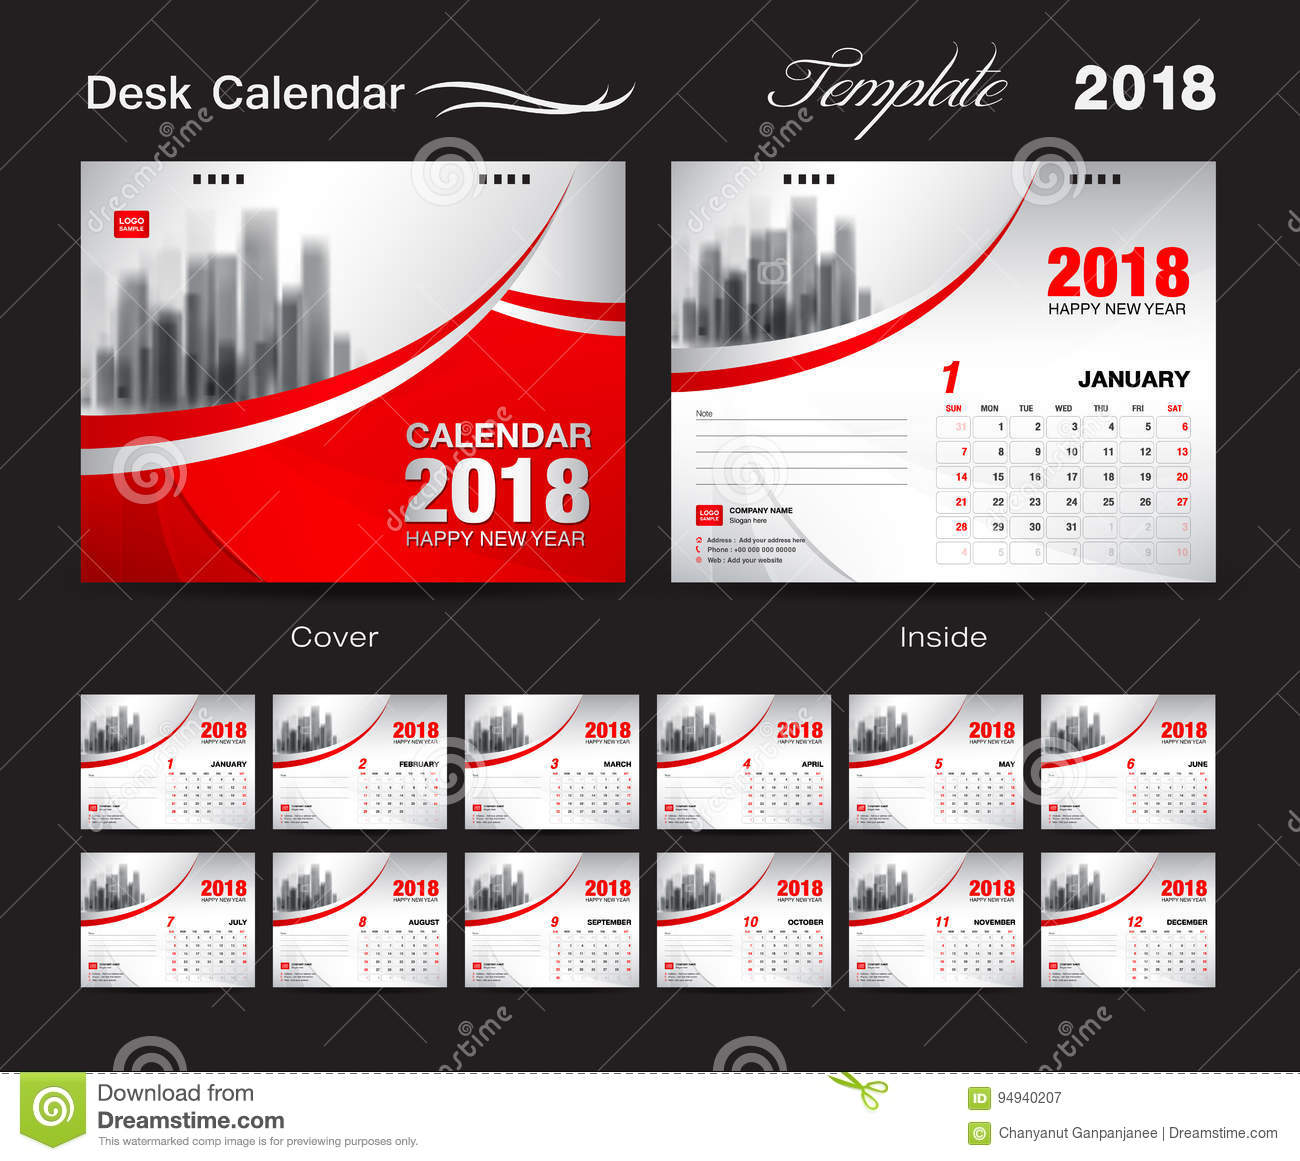 Calendar Cover Design 2014 : Desk calendar template design red cover set of